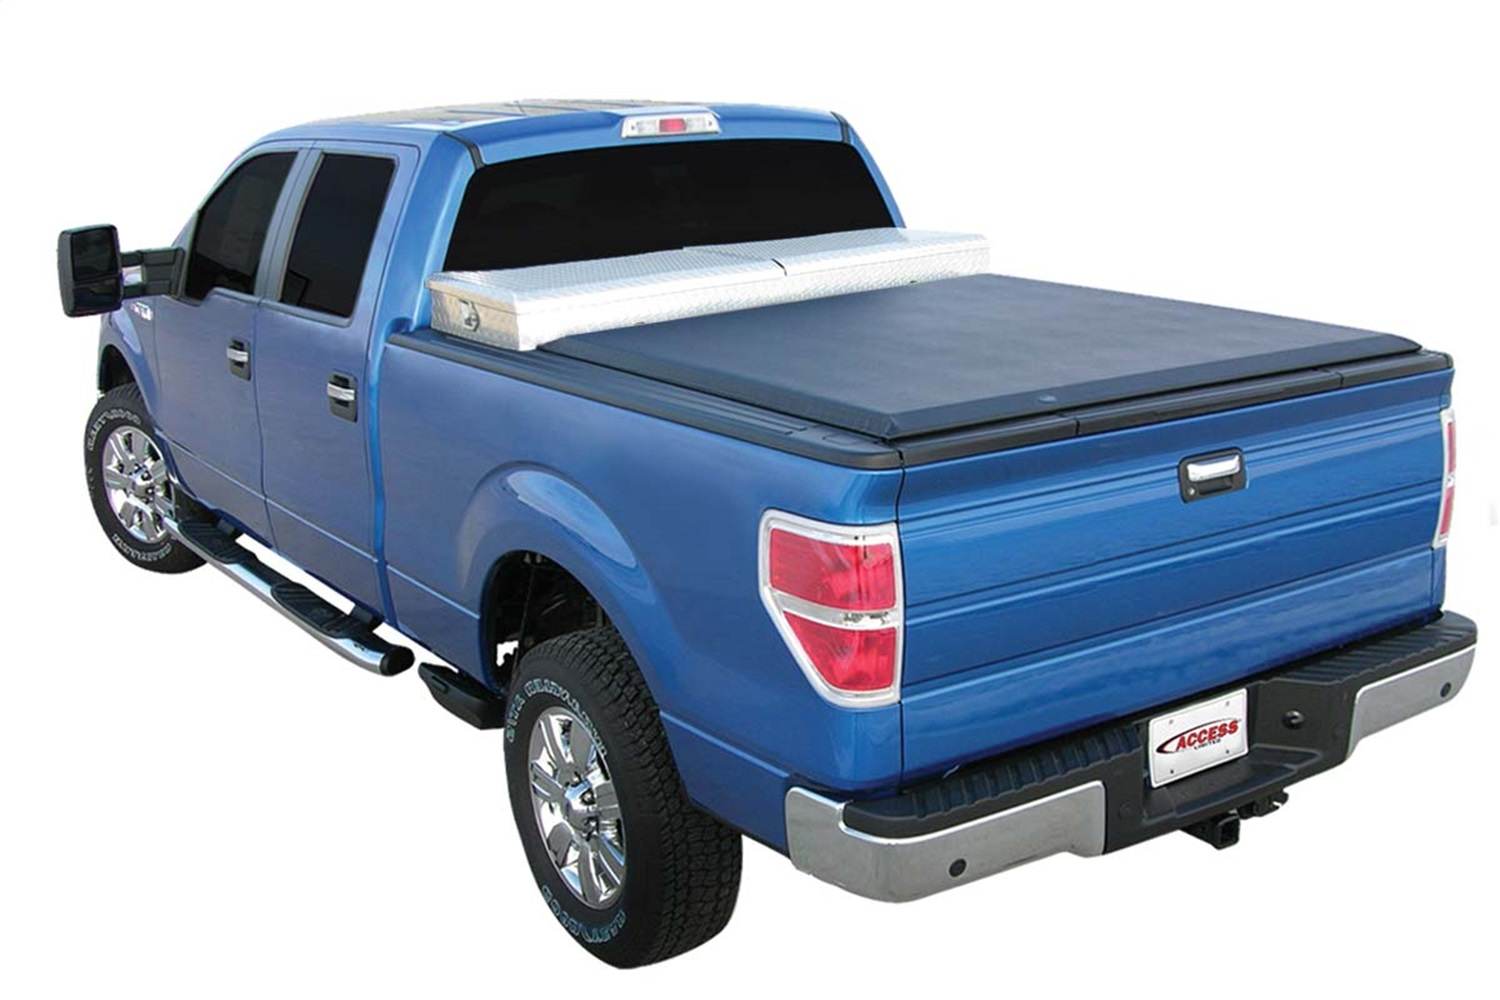 Access Cover 61019 ACCESS Toolbox Edition Roll-Up Cover